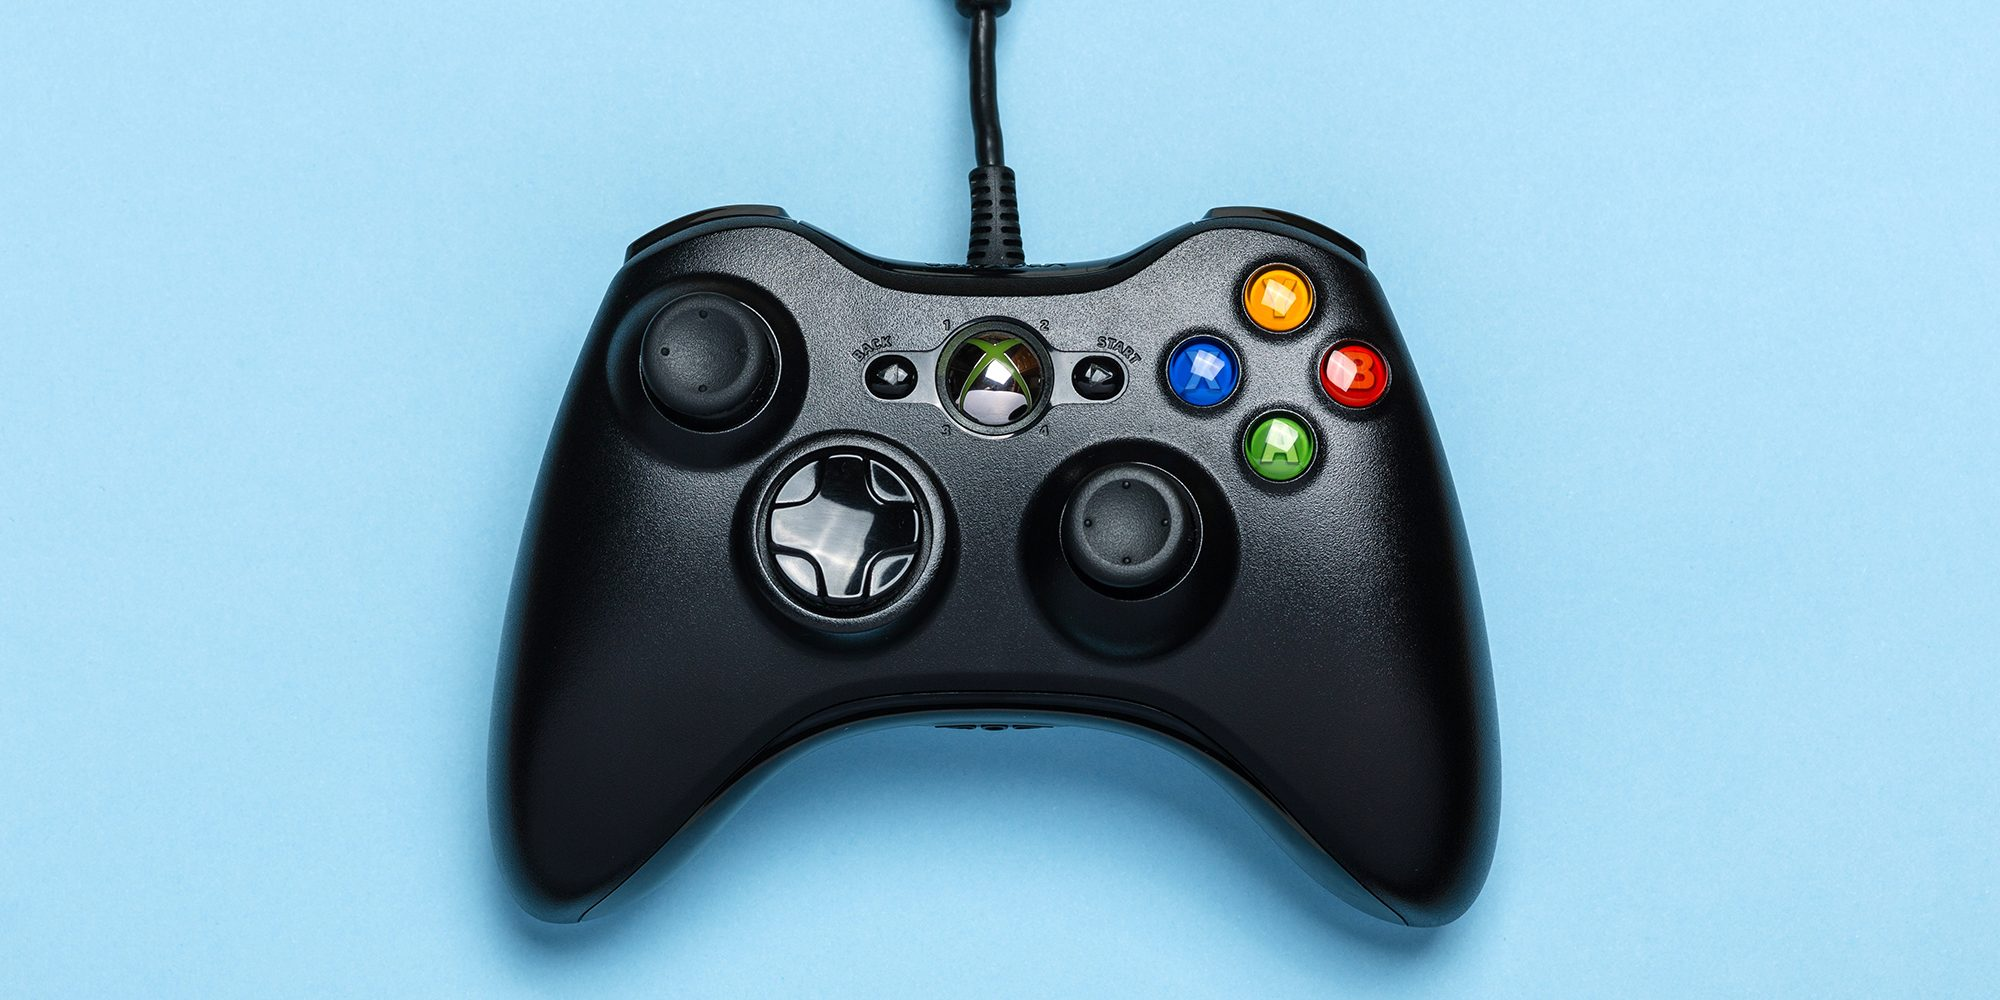 Microsoft's Xbox Live social gaming feature can now be integrated into any iOS and Android app